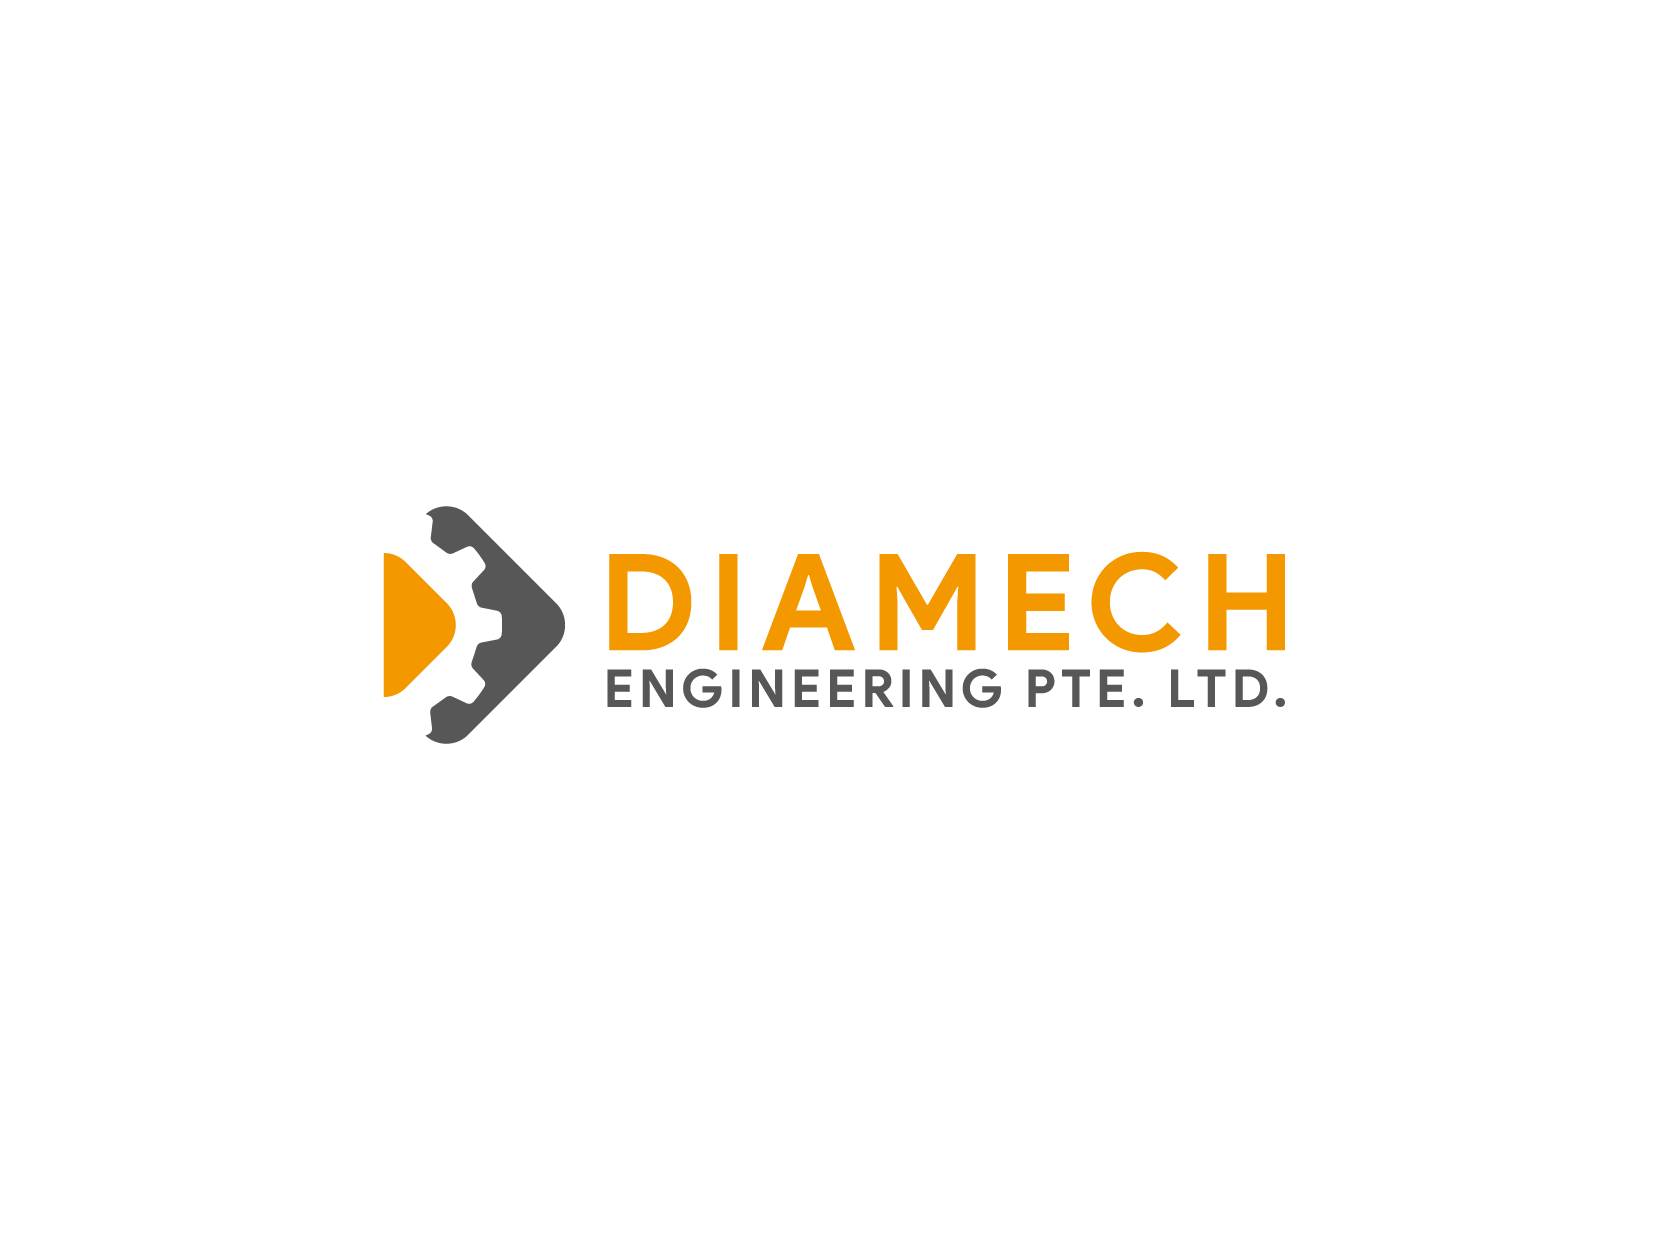 DIAMECH Engineering Pte Ltd Logo Design